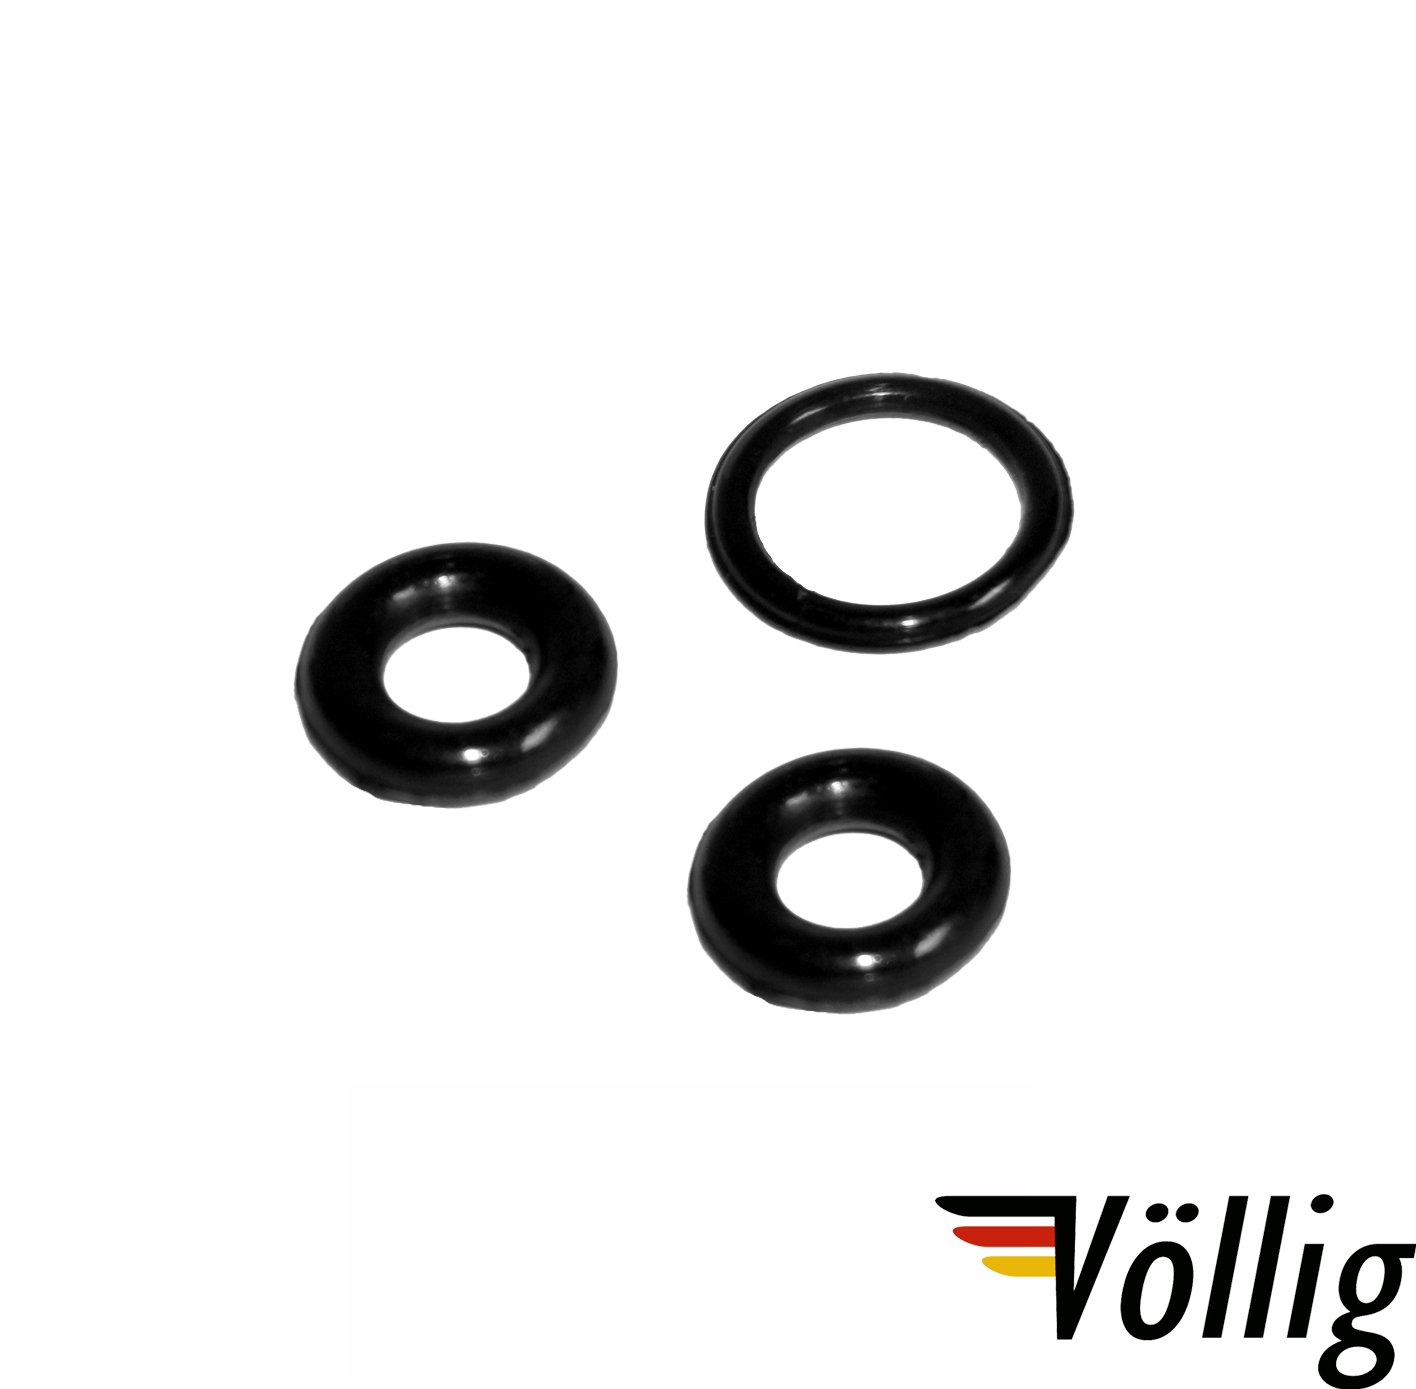 Rubber Fuel Filter Bowl Drain Valve O-Ring Kits for Ford Powerstroke on